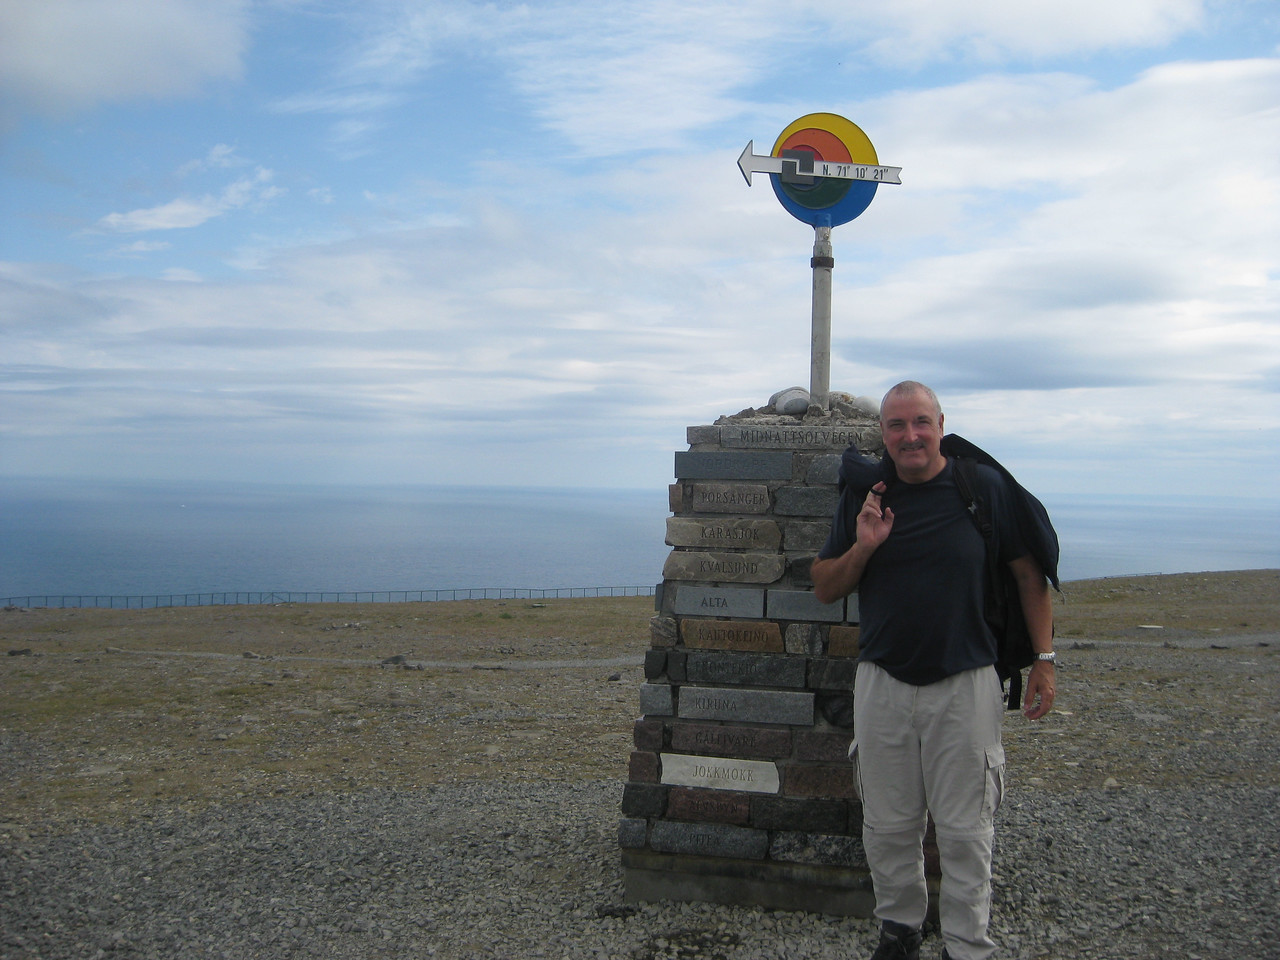 nordcapp, most northerly point in europe